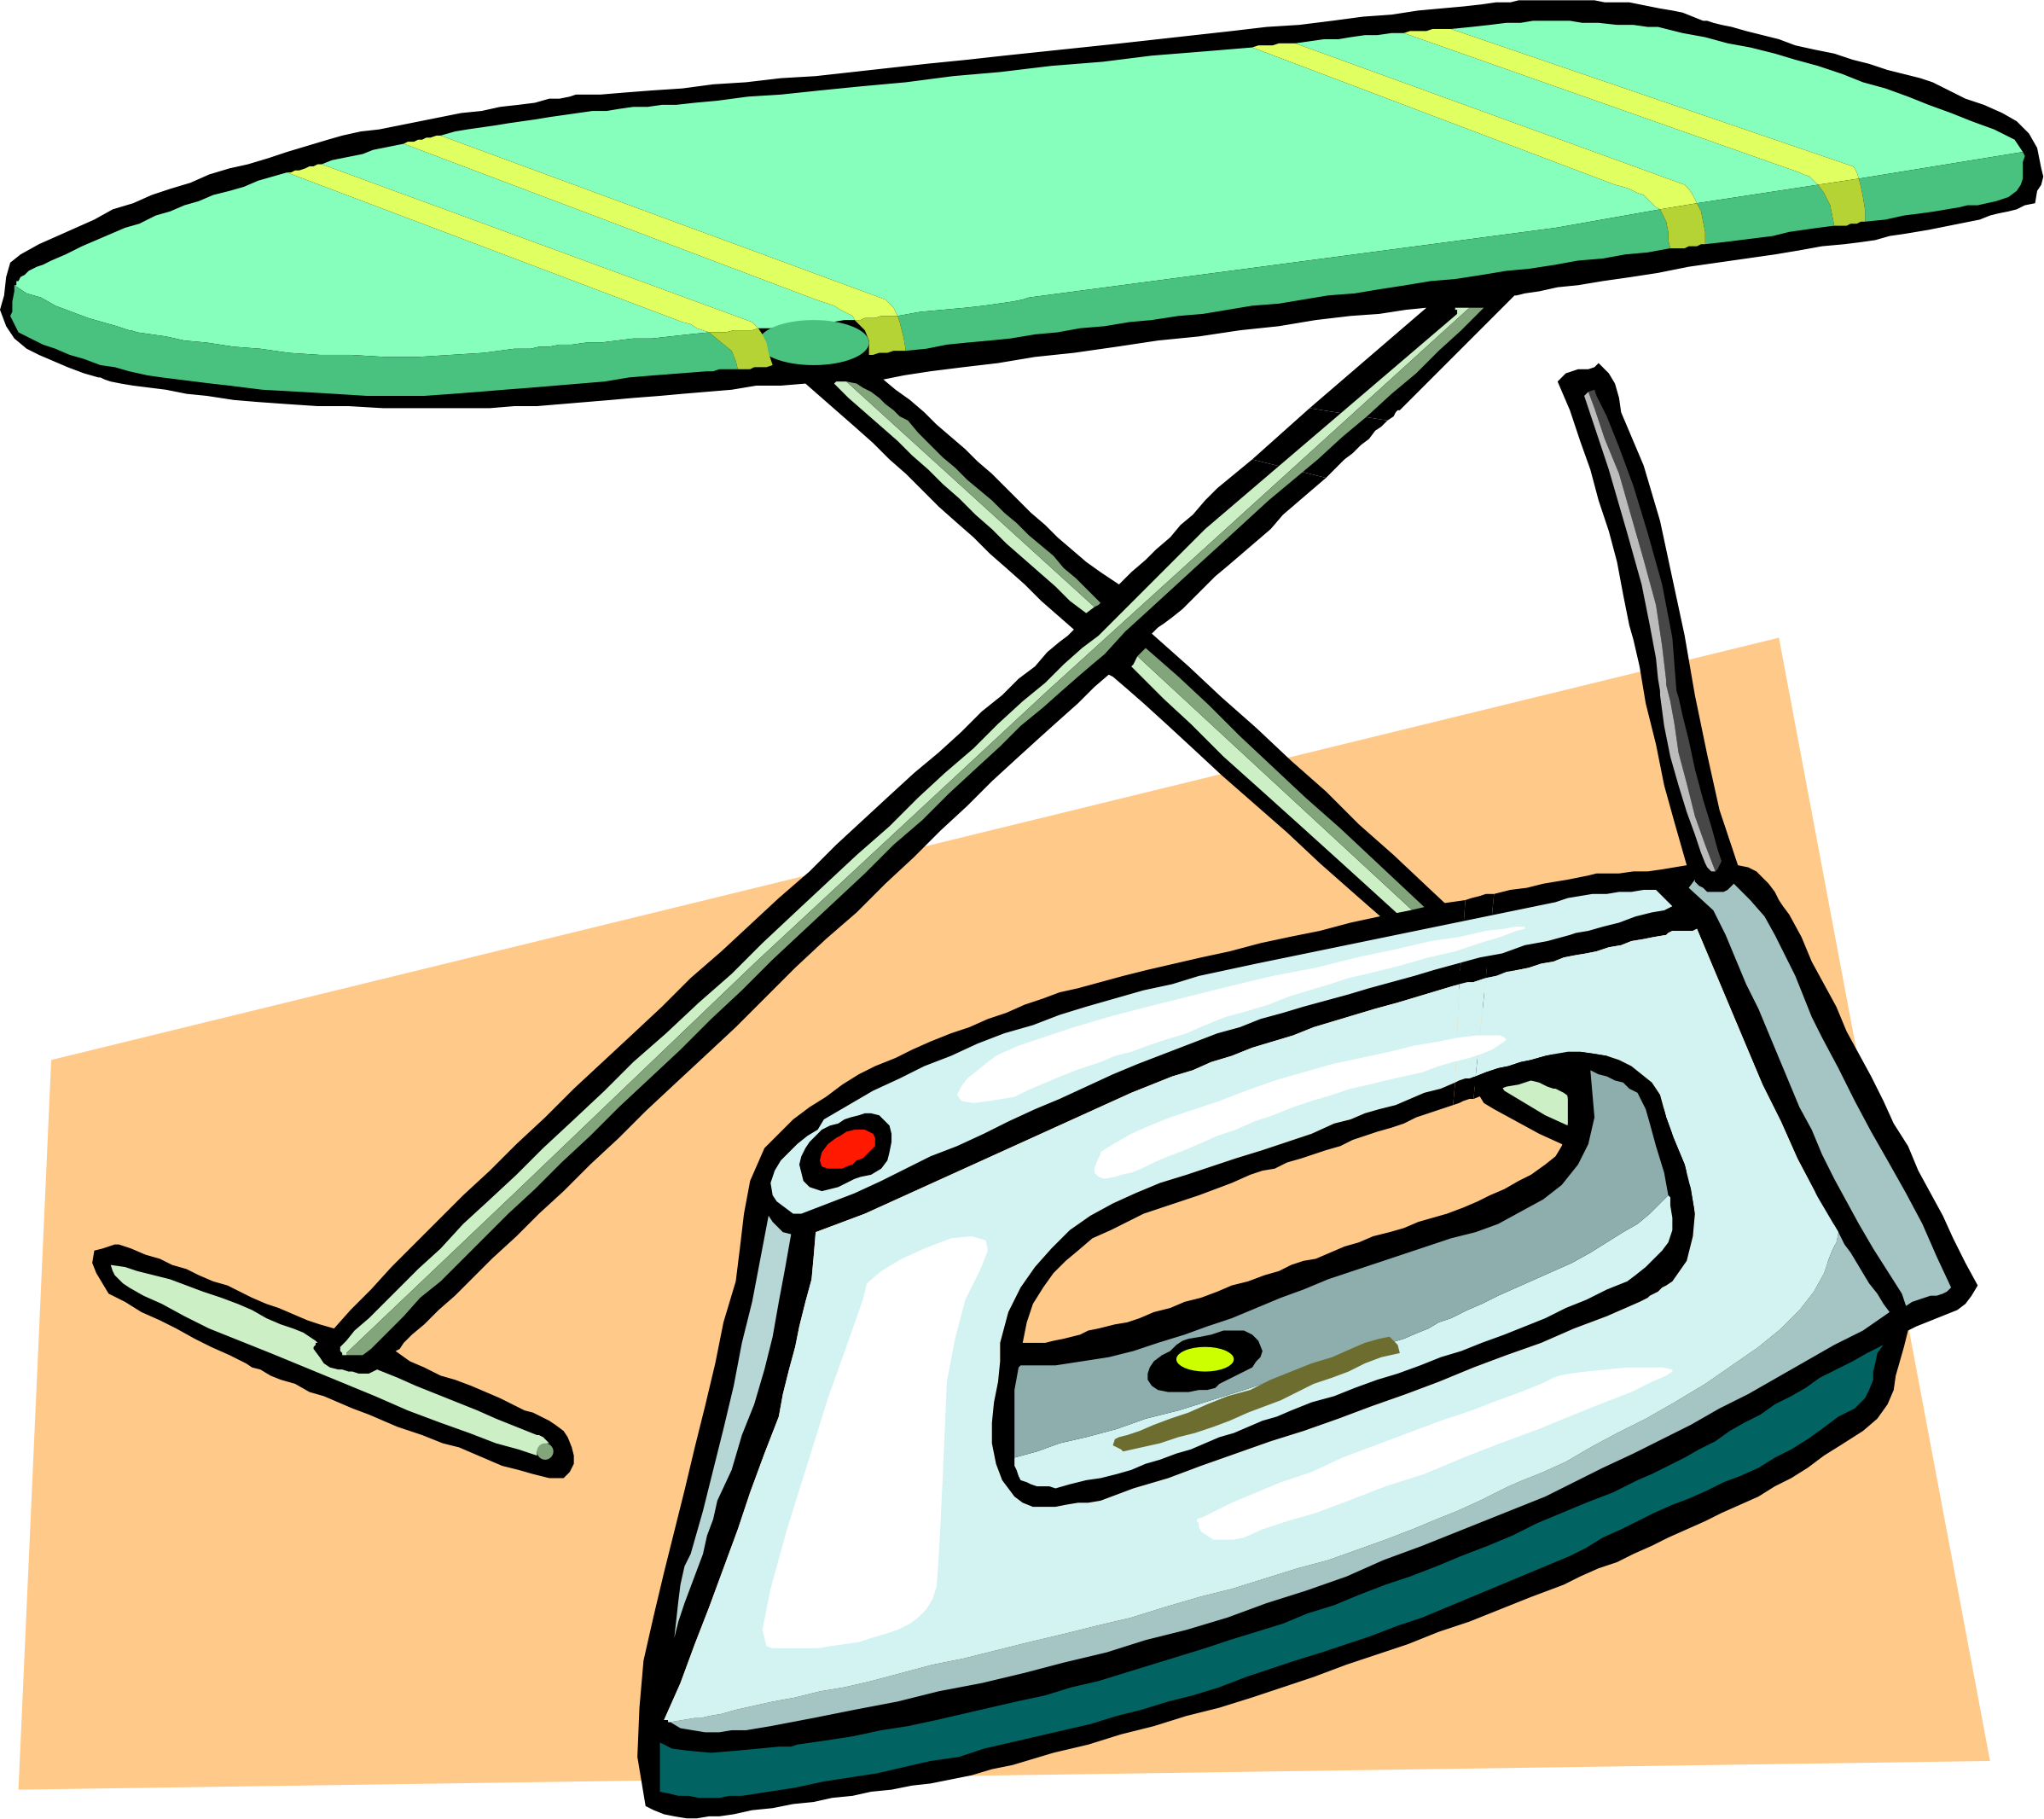 clipart ironing board and iron rh openclipart org  clipart gratuit ordinateur portable